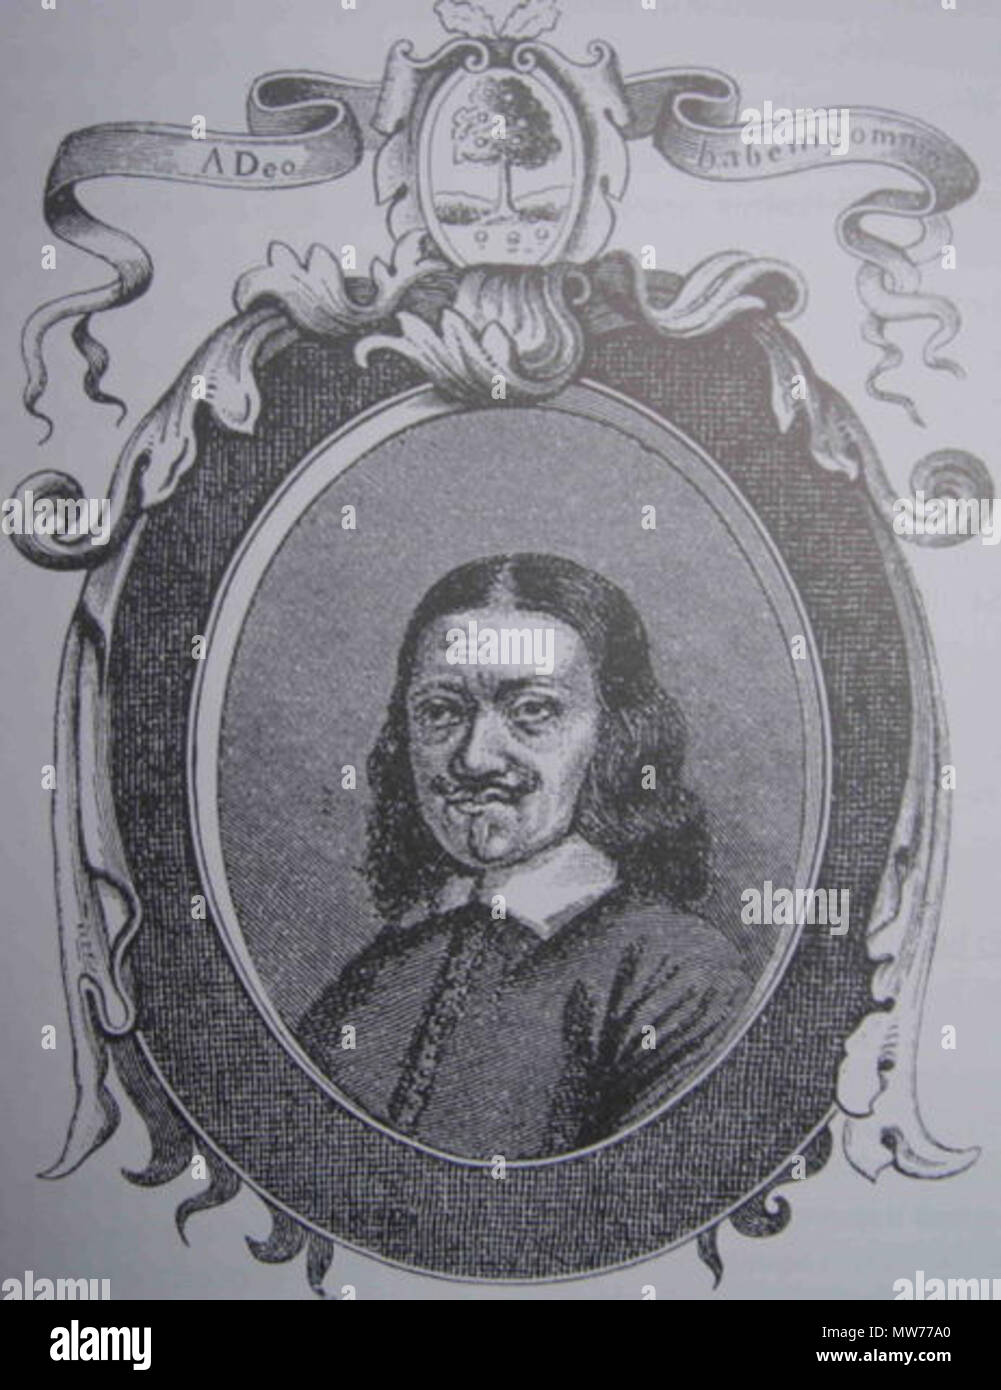 . English: Johannes Mejer (1606-1674), Danish mathematician and map maker (see Category:Maps by Johannes Mejer Dansk: Johannes Mejer (1606-1674), dansk kartograf. Unknown date but very likely more than 70 year ago. Unknown 320 JohannesMejer - Stock Image